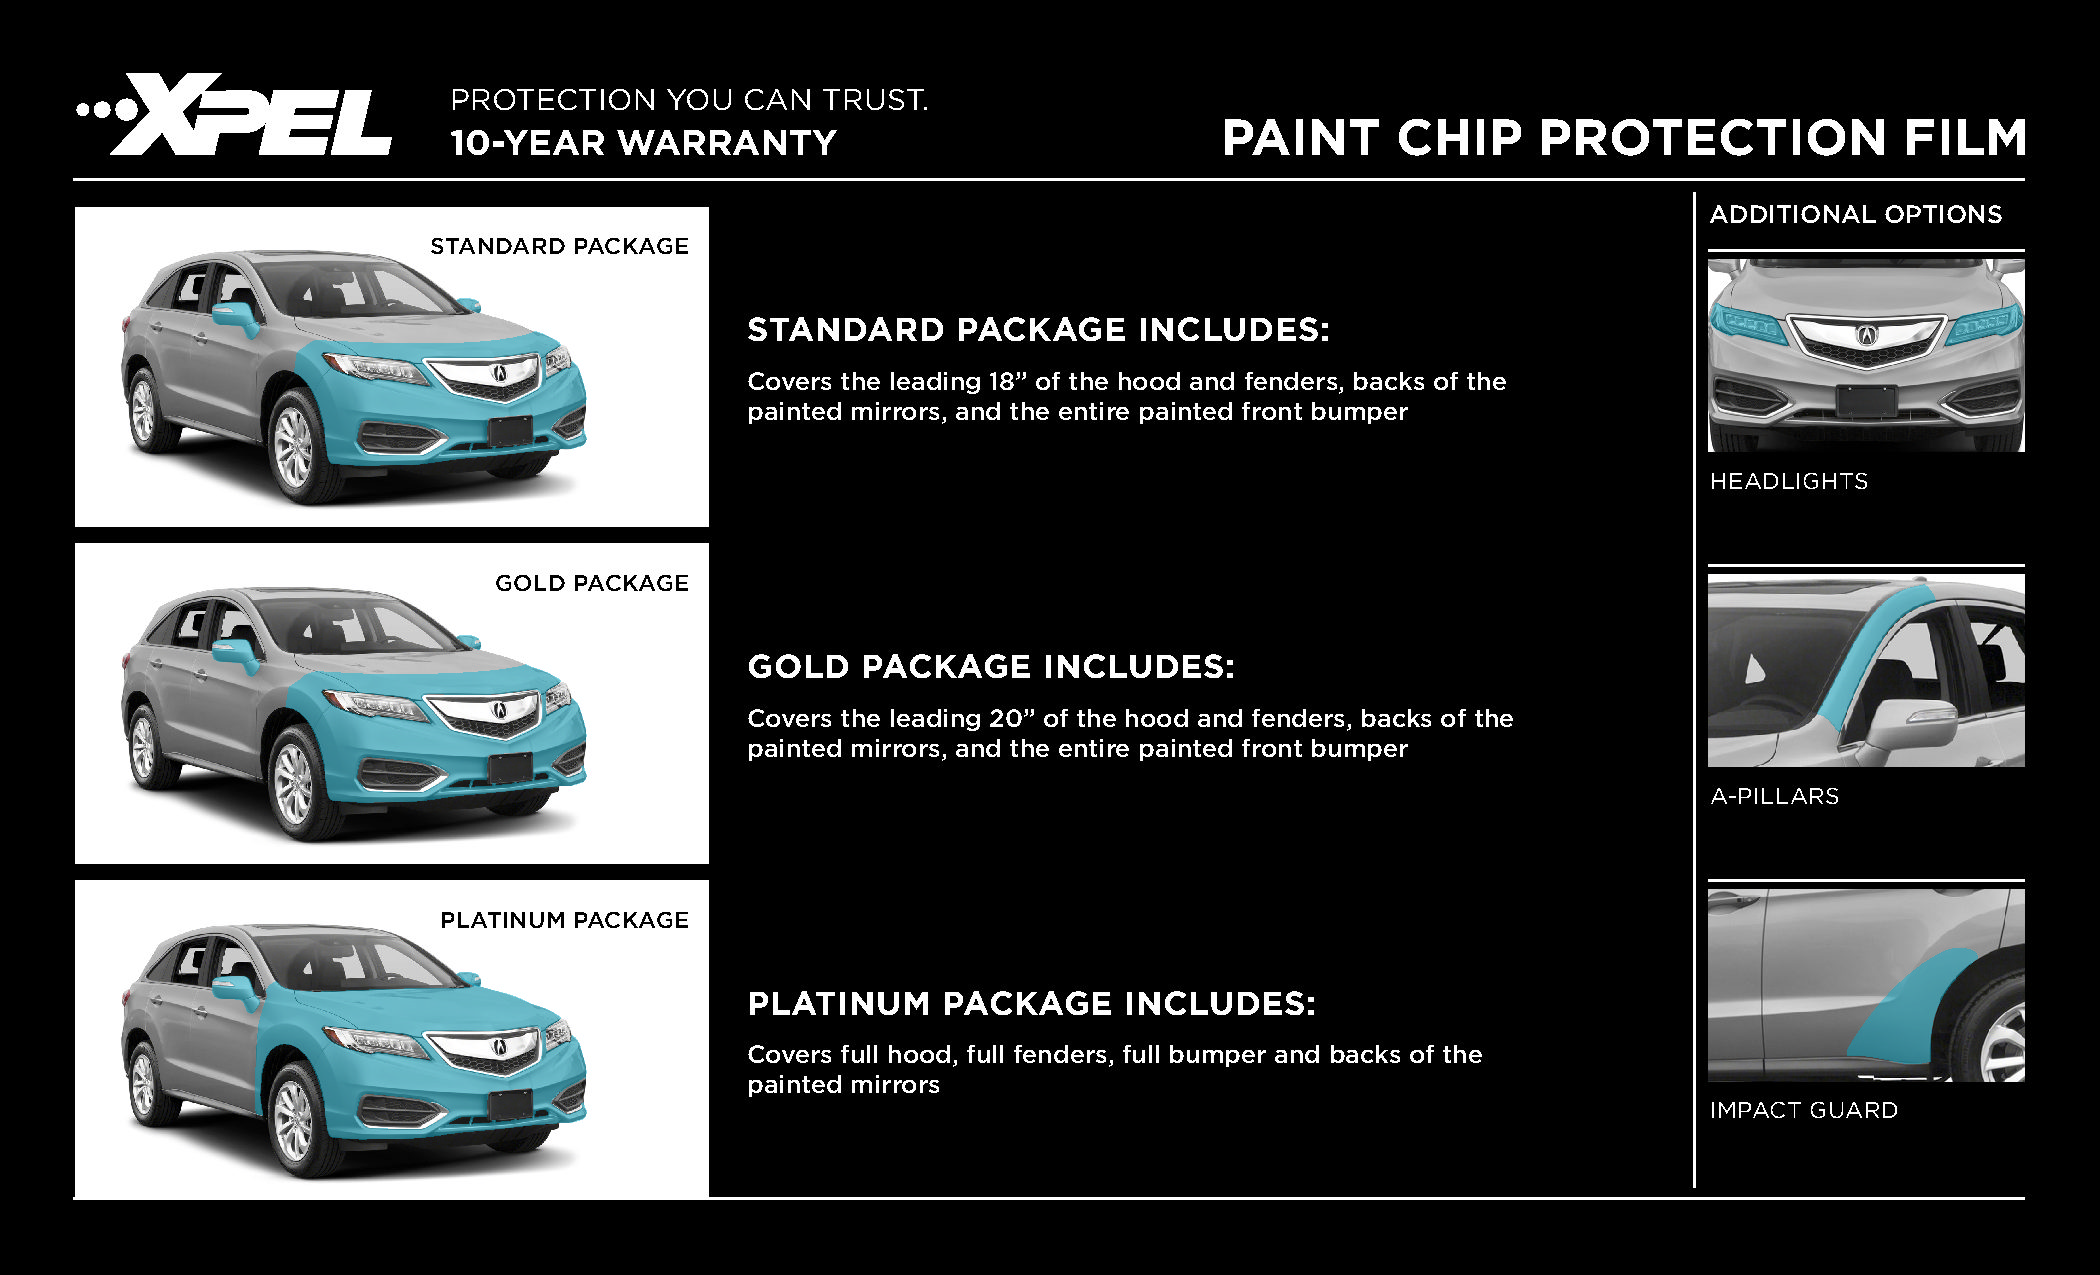 xpel paint chip protection film